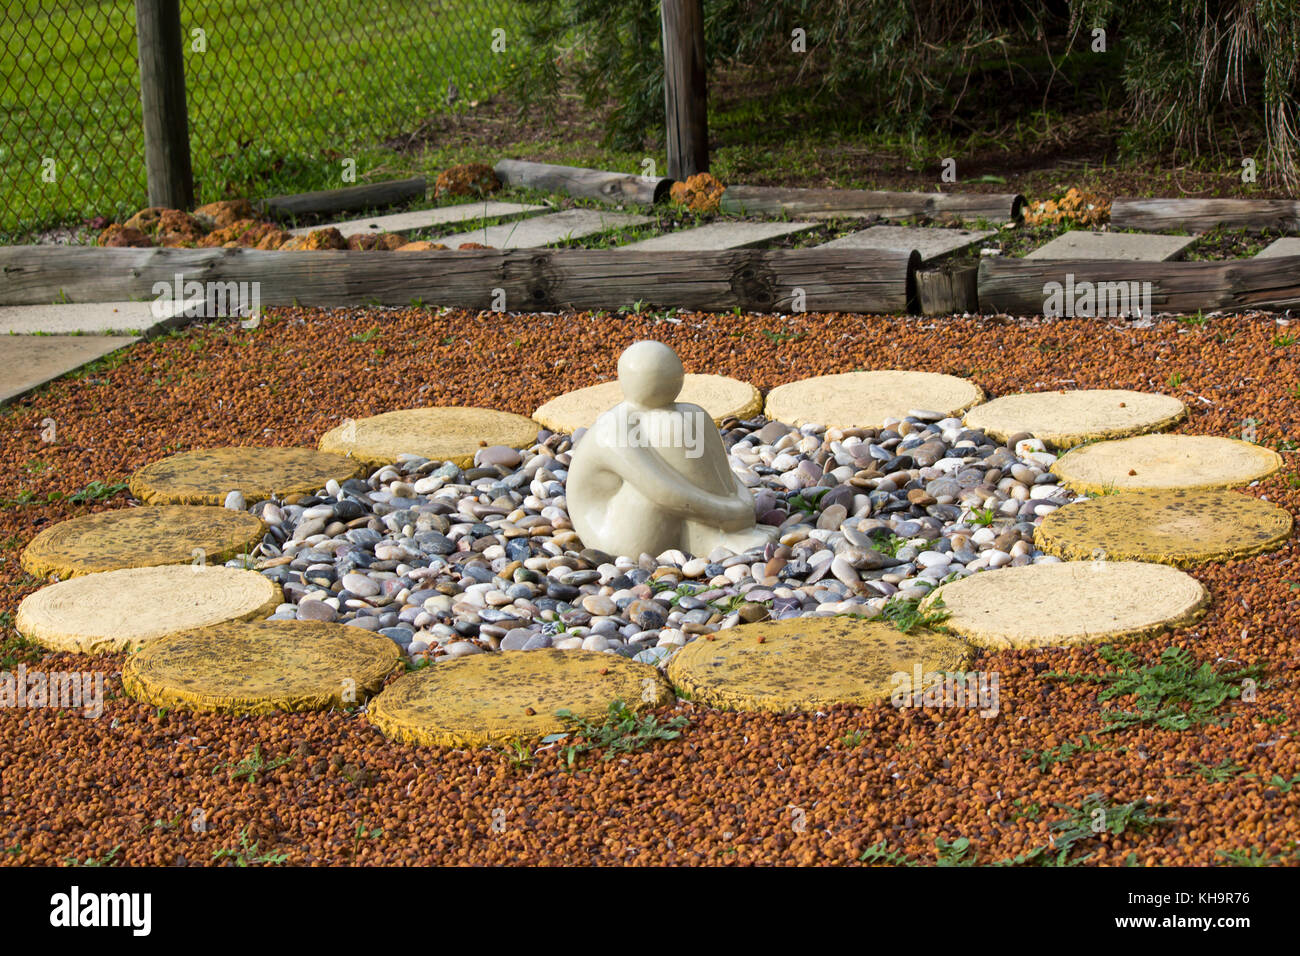 Ceramic Figure Sitting On Stones Encircled By Round Concrete Stepping  Blocks In A Garden Is Conducive